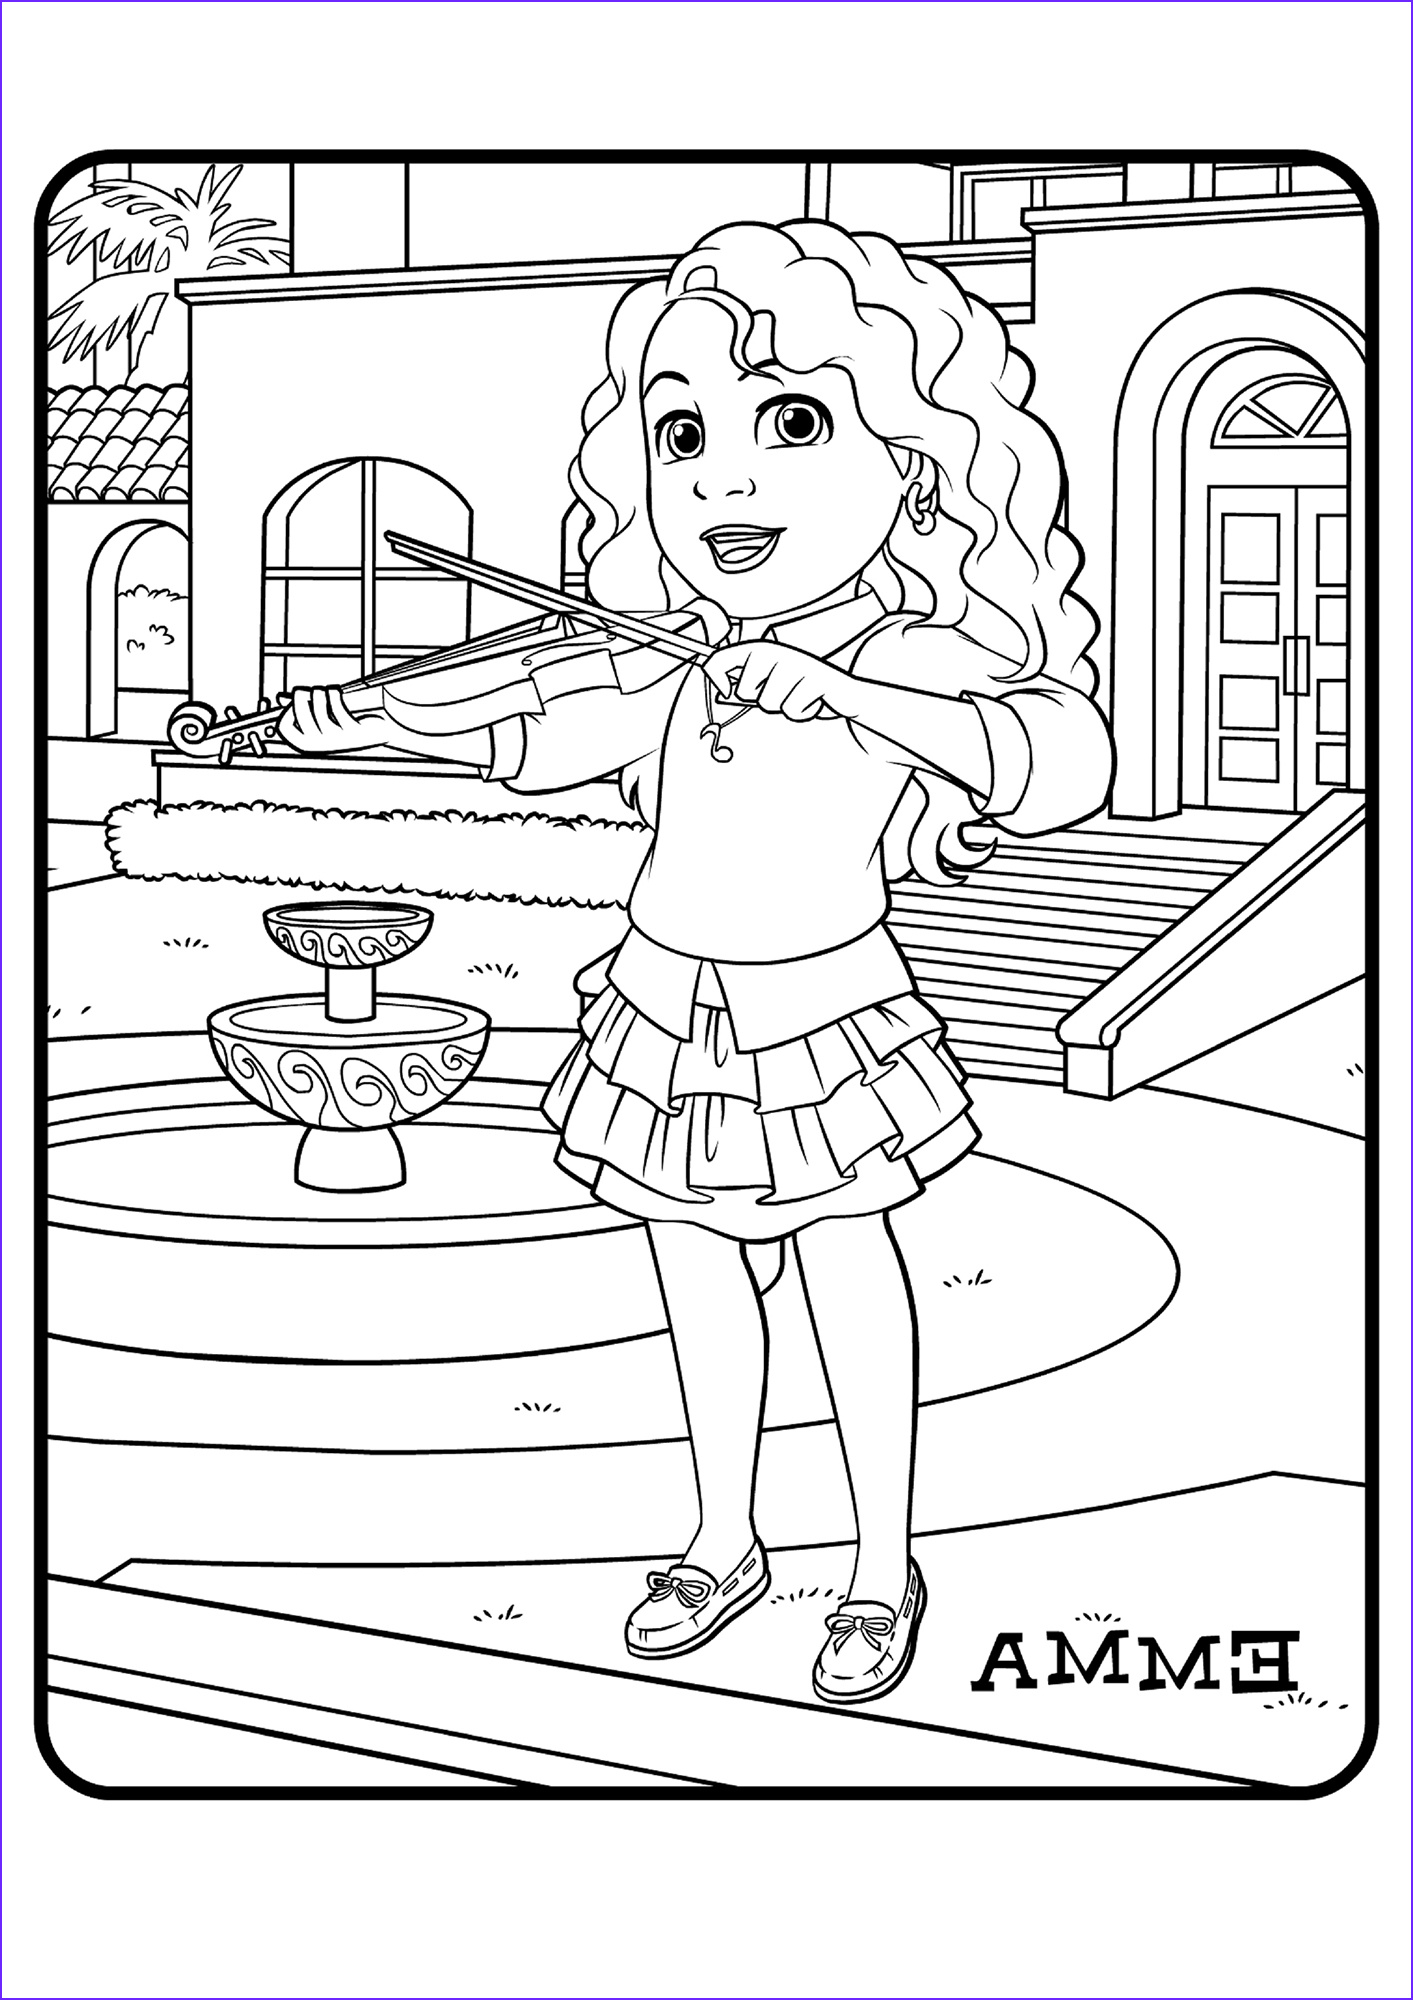 Friends Coloring Pages New Photos Dora and Friends Coloring Pages to and Print for Free